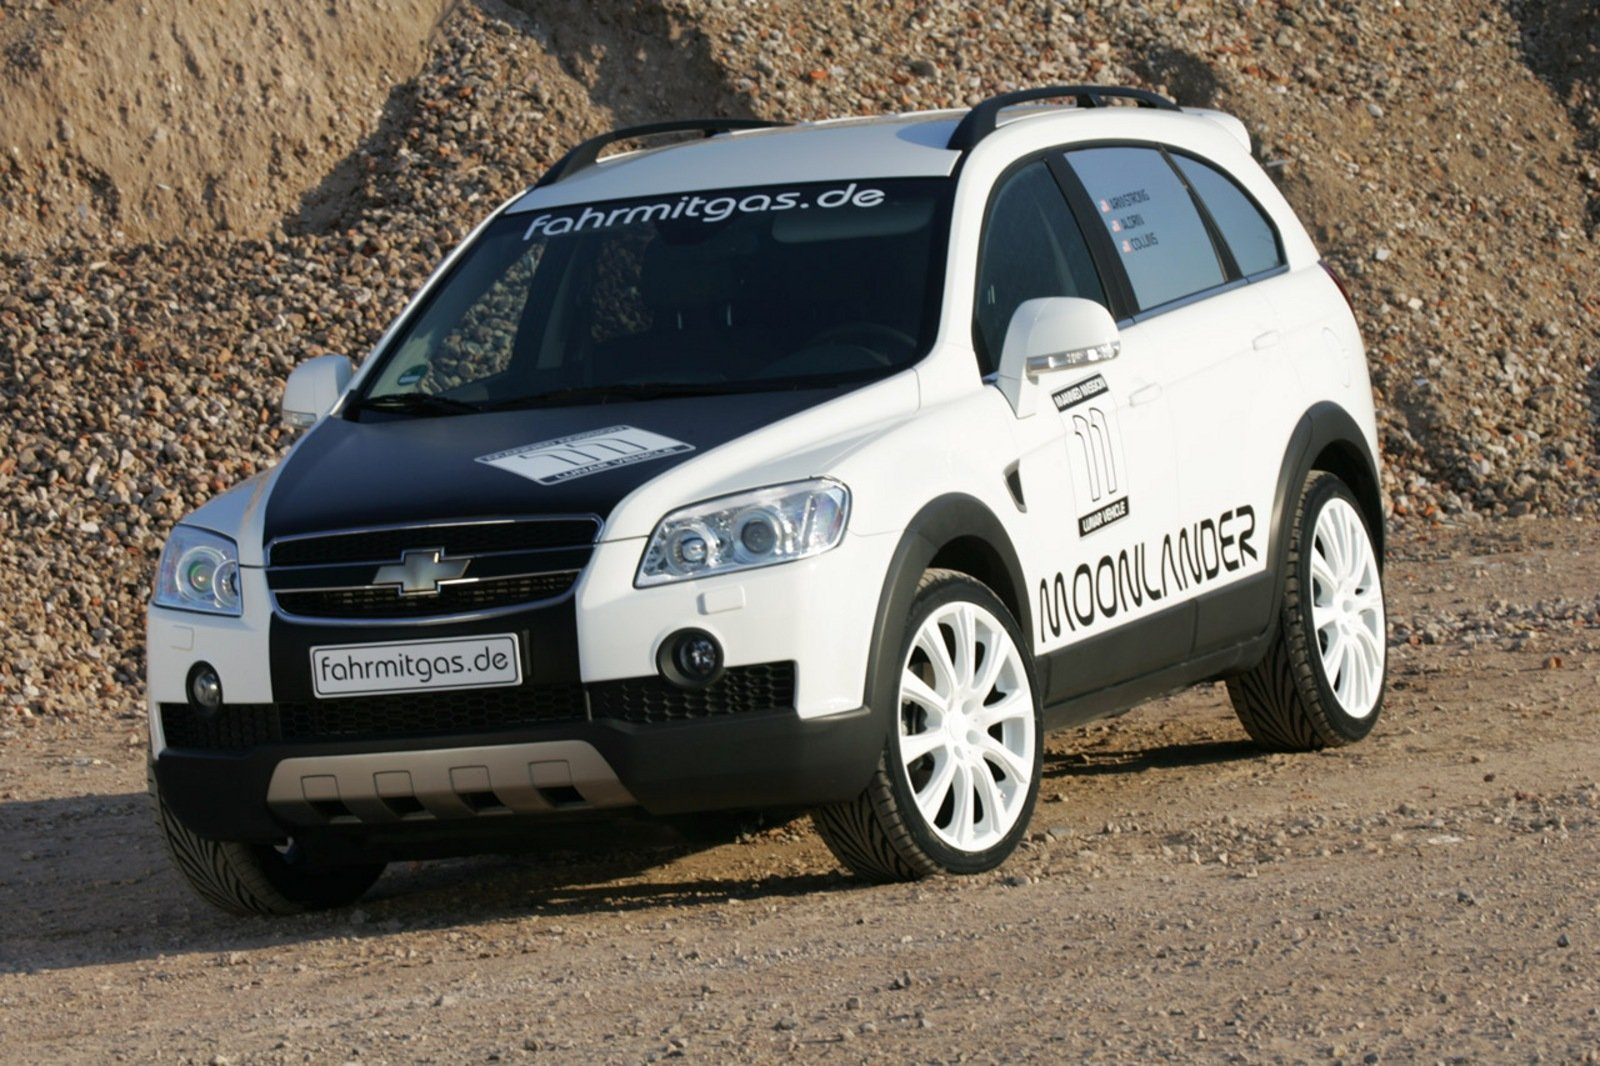 hight resolution of 2009 chevrolet captiva moonlander celebrates 40 years of space exploration